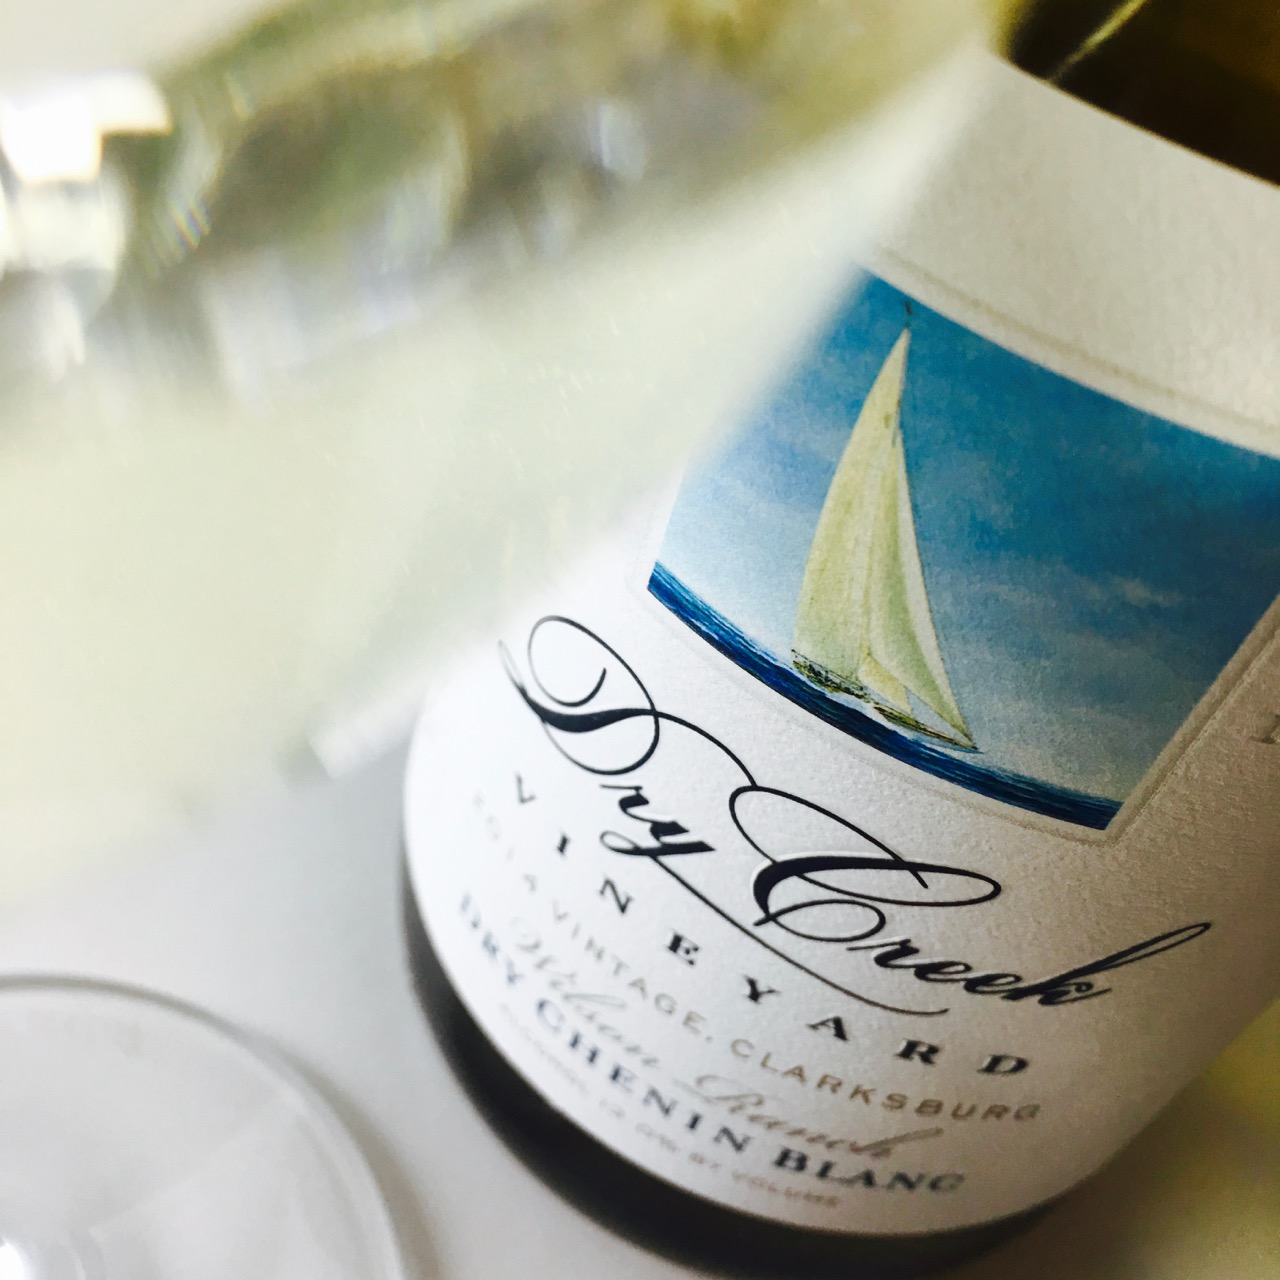 2014 Dry Creek Vineyard Chenin Blanc Wilson Ranch, Clarksburg